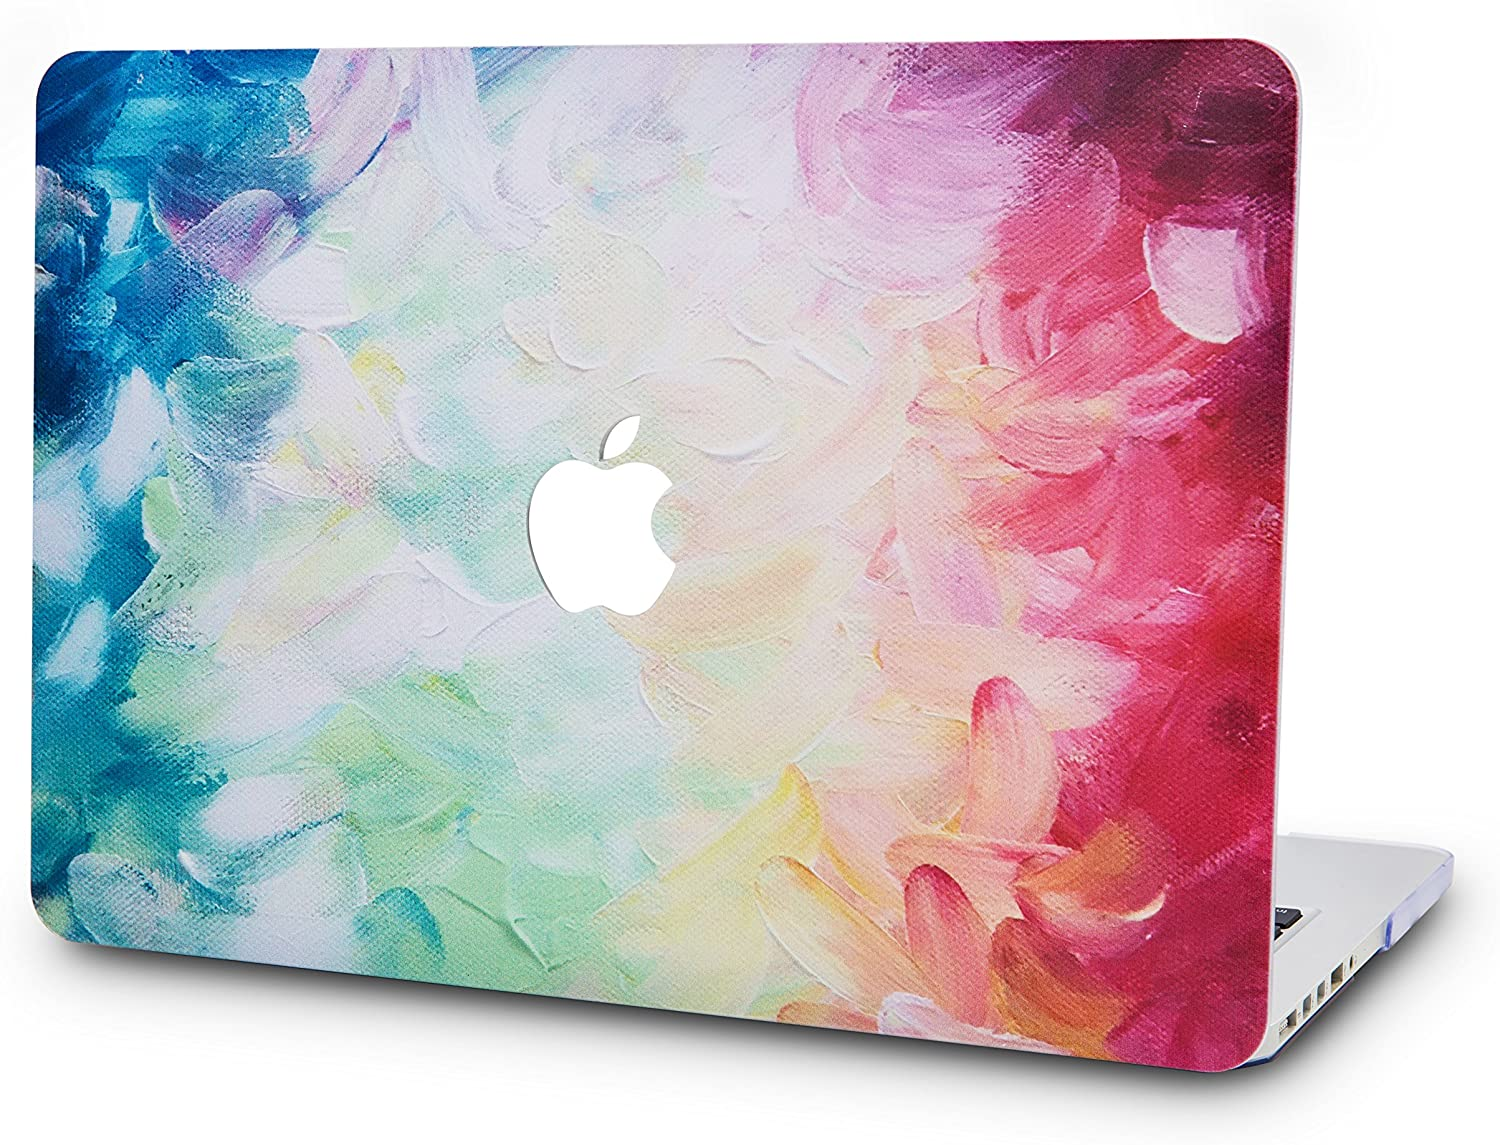 "KECC Laptop Case for Old MacBook Pro 15"" Retina (-2015) Plastic Case Hard Shell Cover A1398 (Fantasy)"